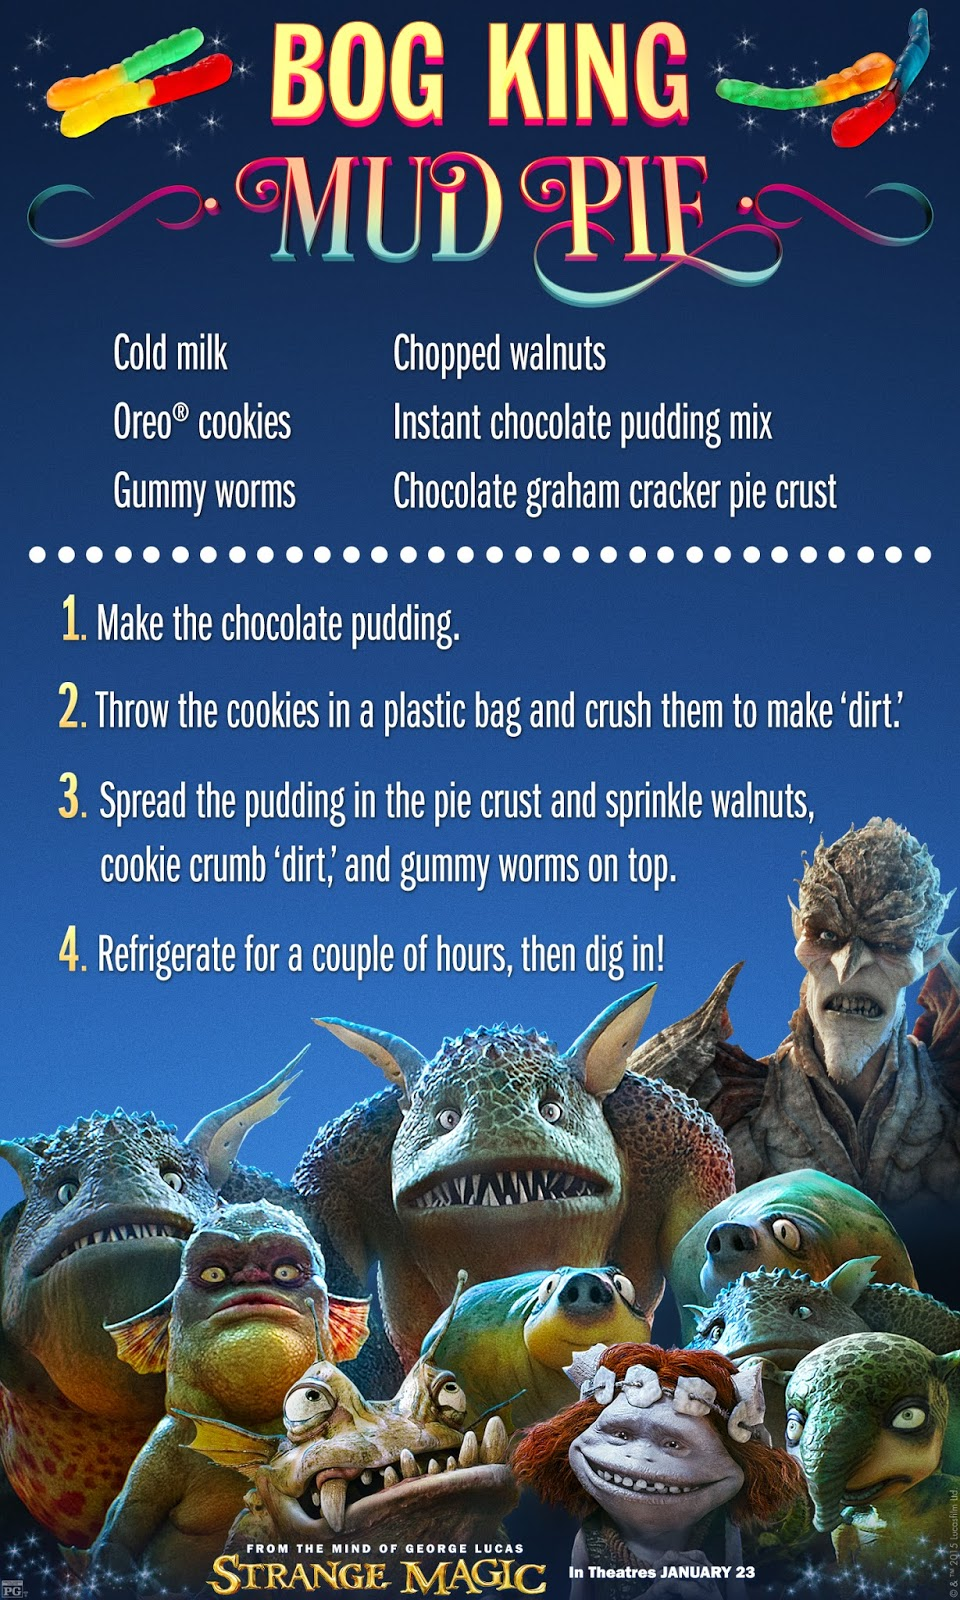 """Strange Magic"" Bog King Mud Pie Recipe Card"